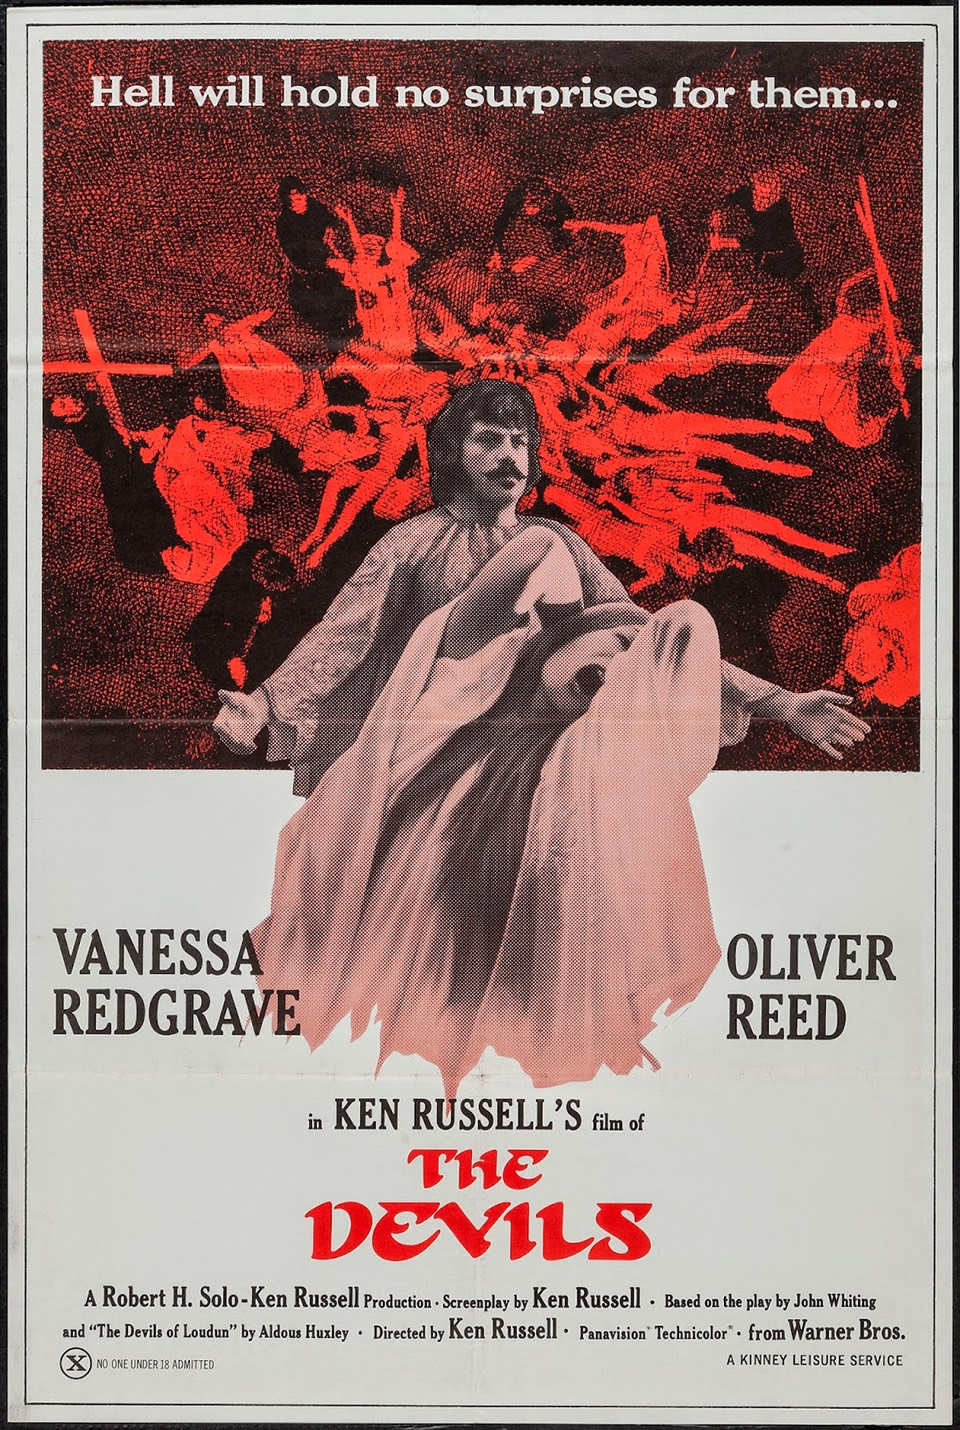 43 - The Devils (1971)